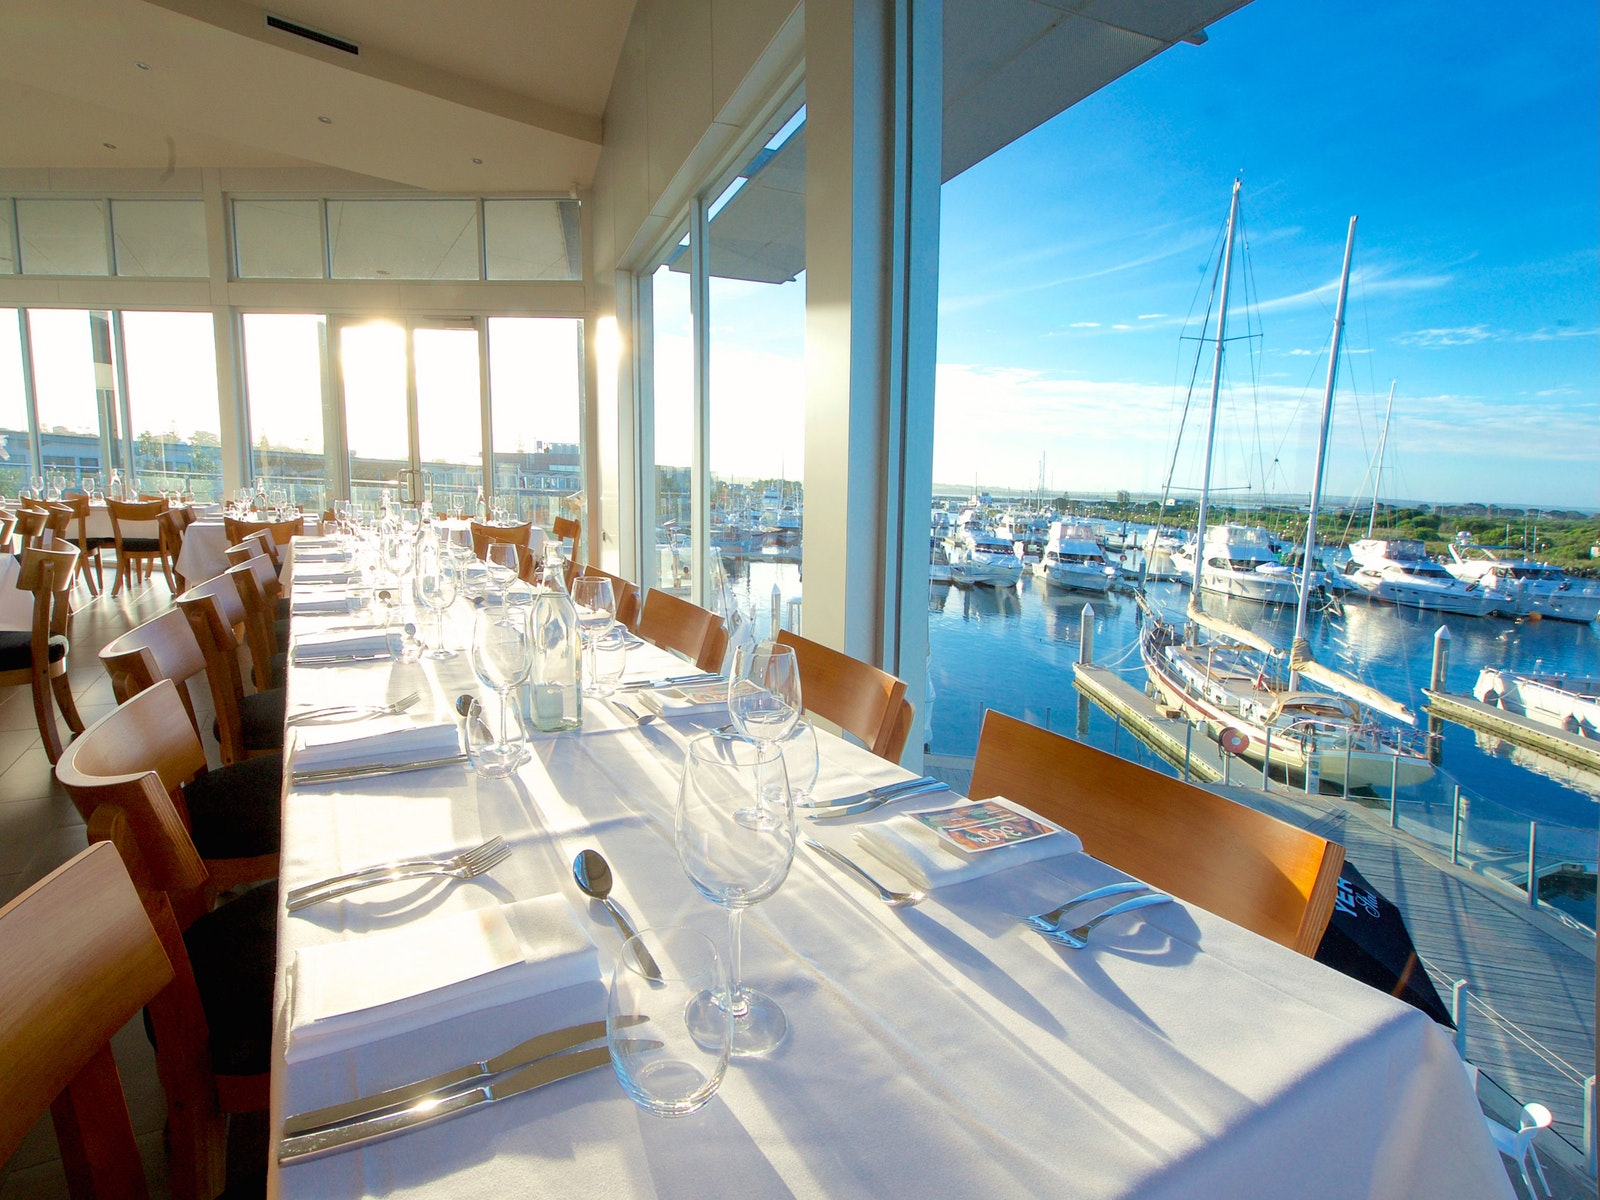 360Q restaurant and wedding functions venue at Queenscliff